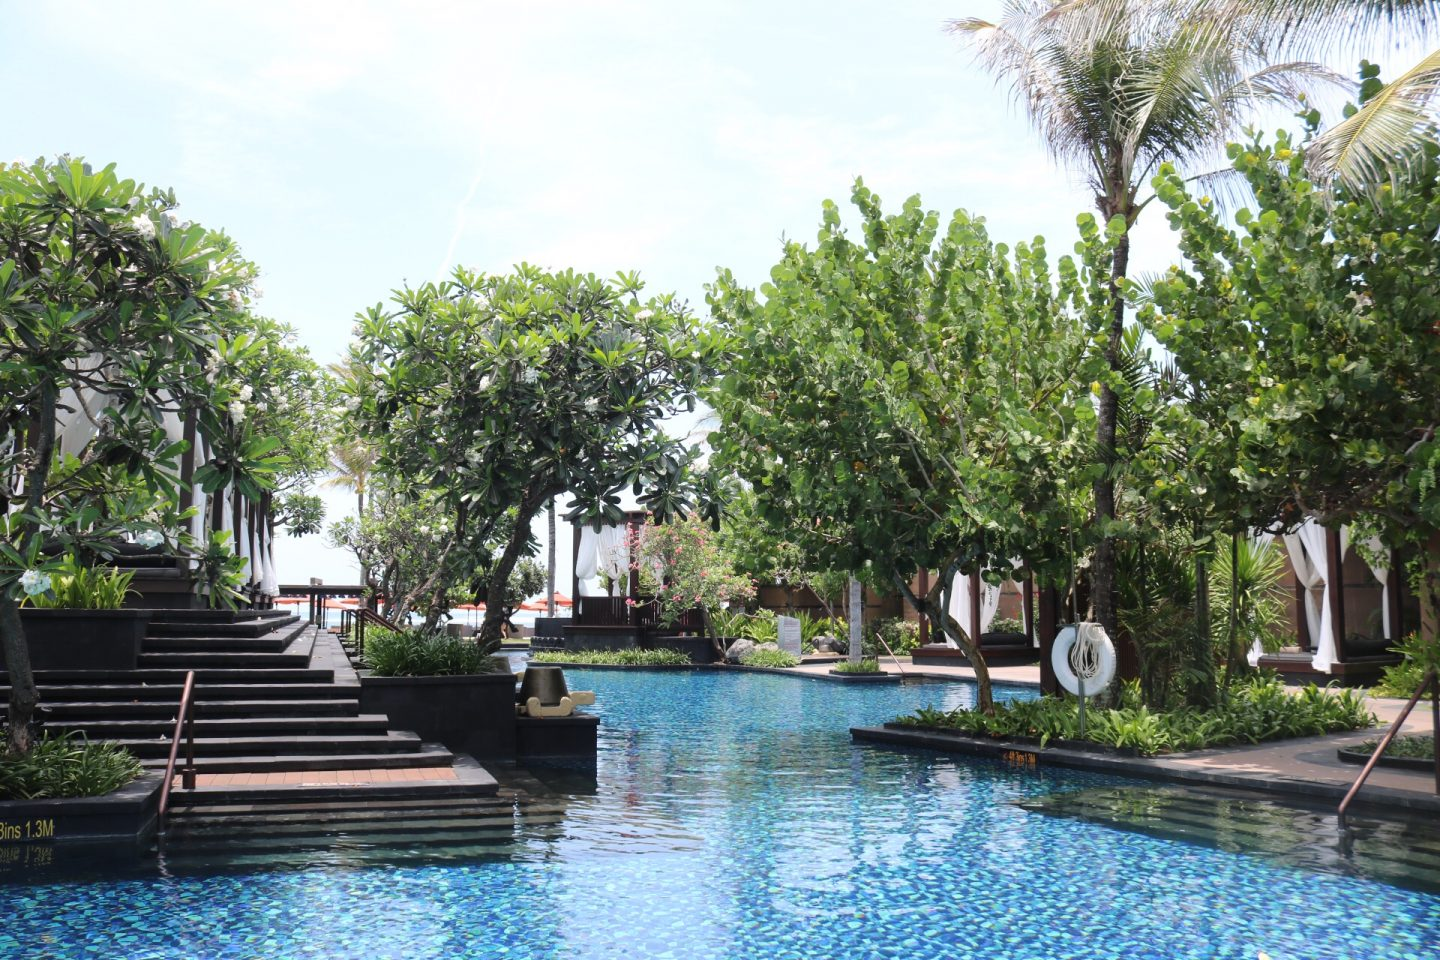 Hotel Review: The St. Regis Bali Resort